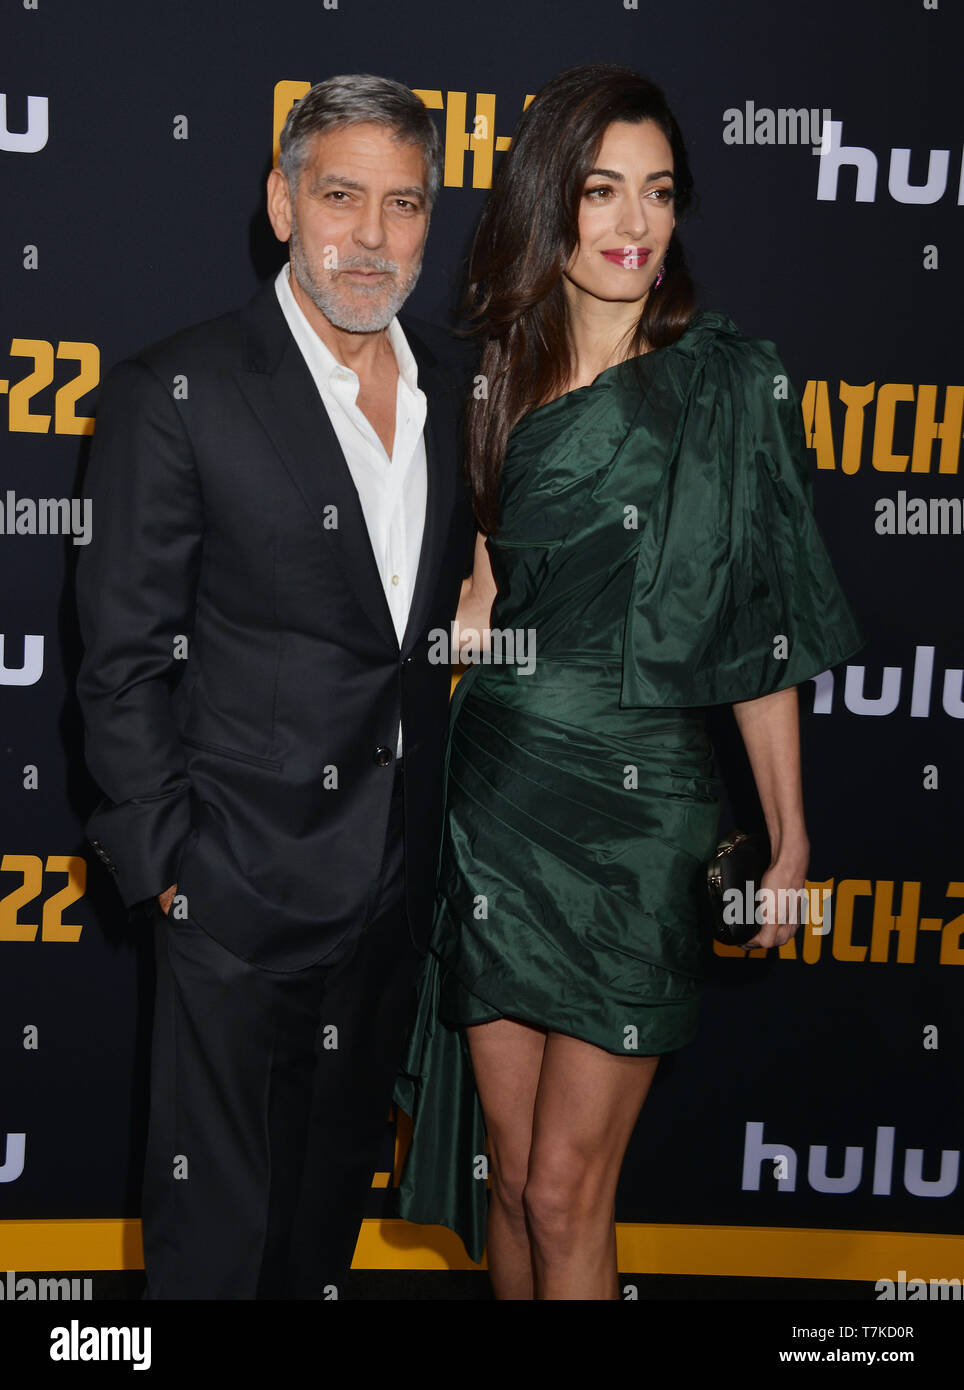 Los Angeles, USA  07th May, 2019  a George Clooney, Amal Clooney 006